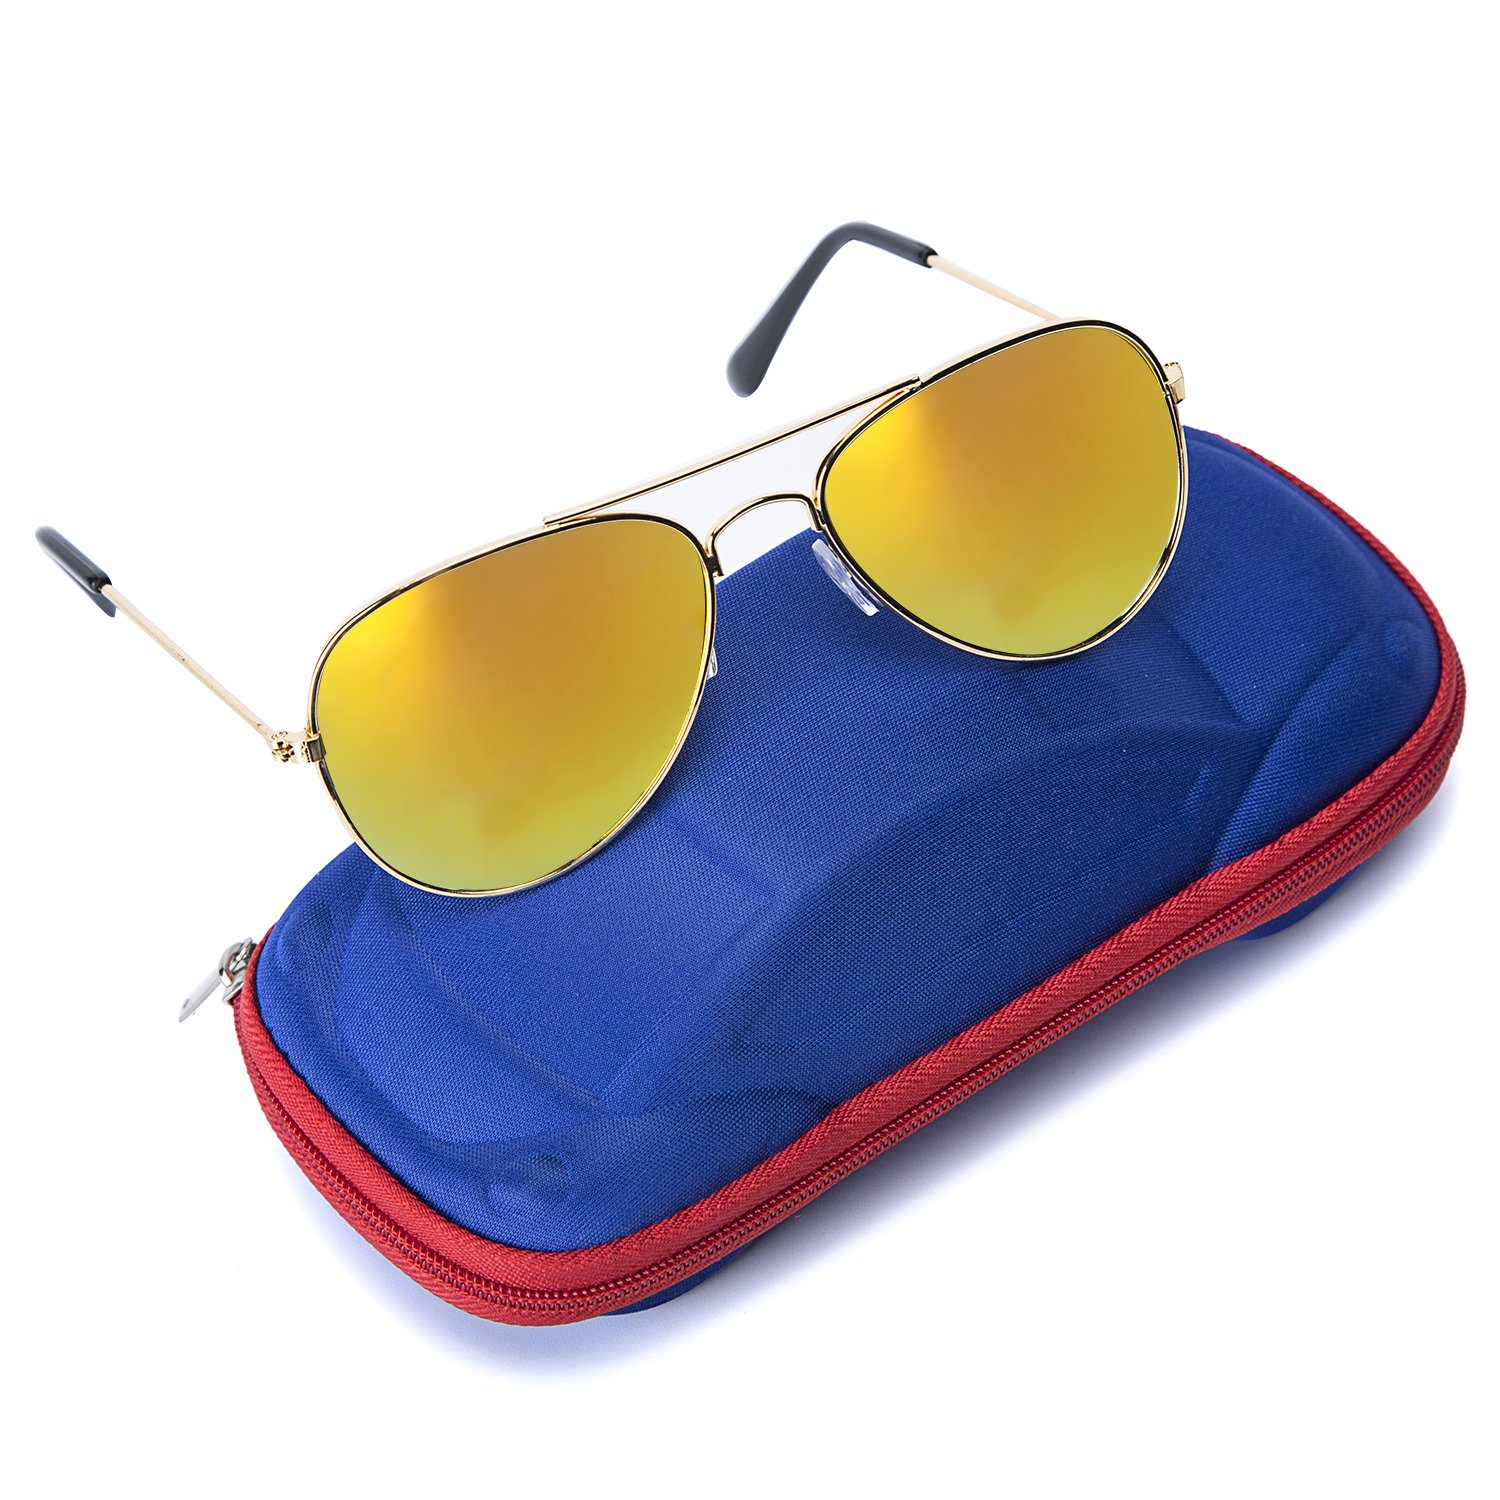 Kids Junior Aviator Classic Sunglasses Metal Frame Reflective Lenses By Comcl 52) Boys Sunglasses-Blue Flash